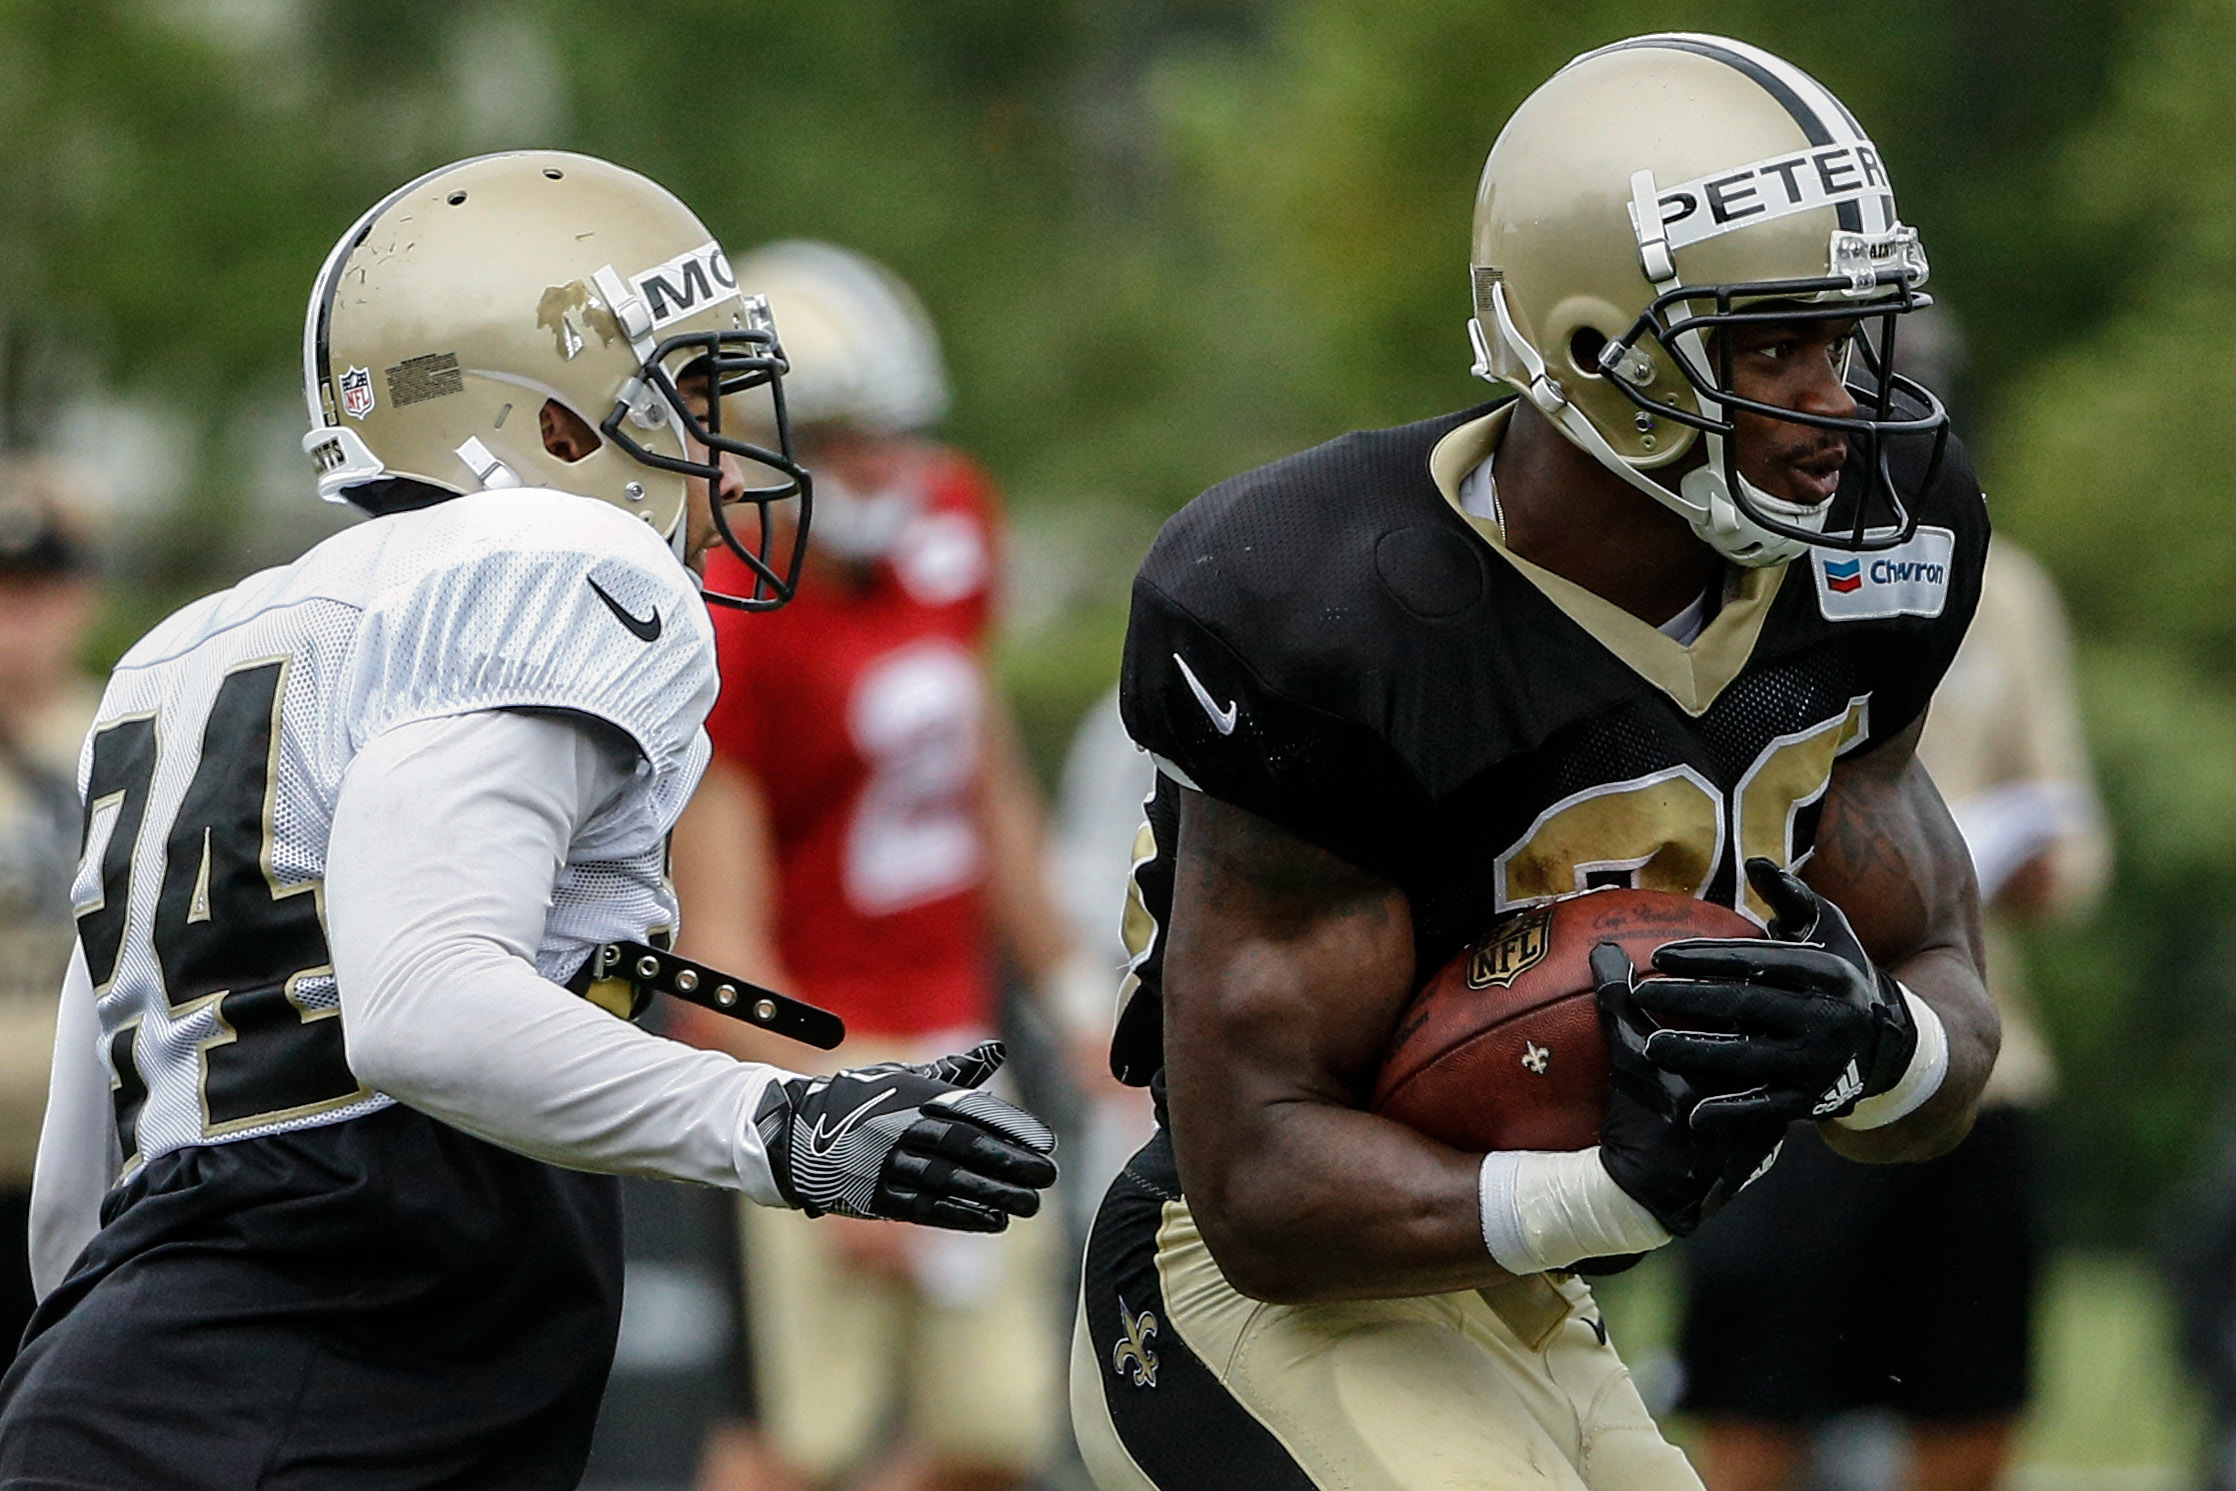 Jul 29, 2017; Metairie, LA, USA; New Orleans Saints running back Adrian Peterson (28) breaks a tackle by corner back Sterling Moore (24) during training camp at the Metairie Training Facility. Mandatory Credit: Derick E. Hingle-USA TODAY Sports